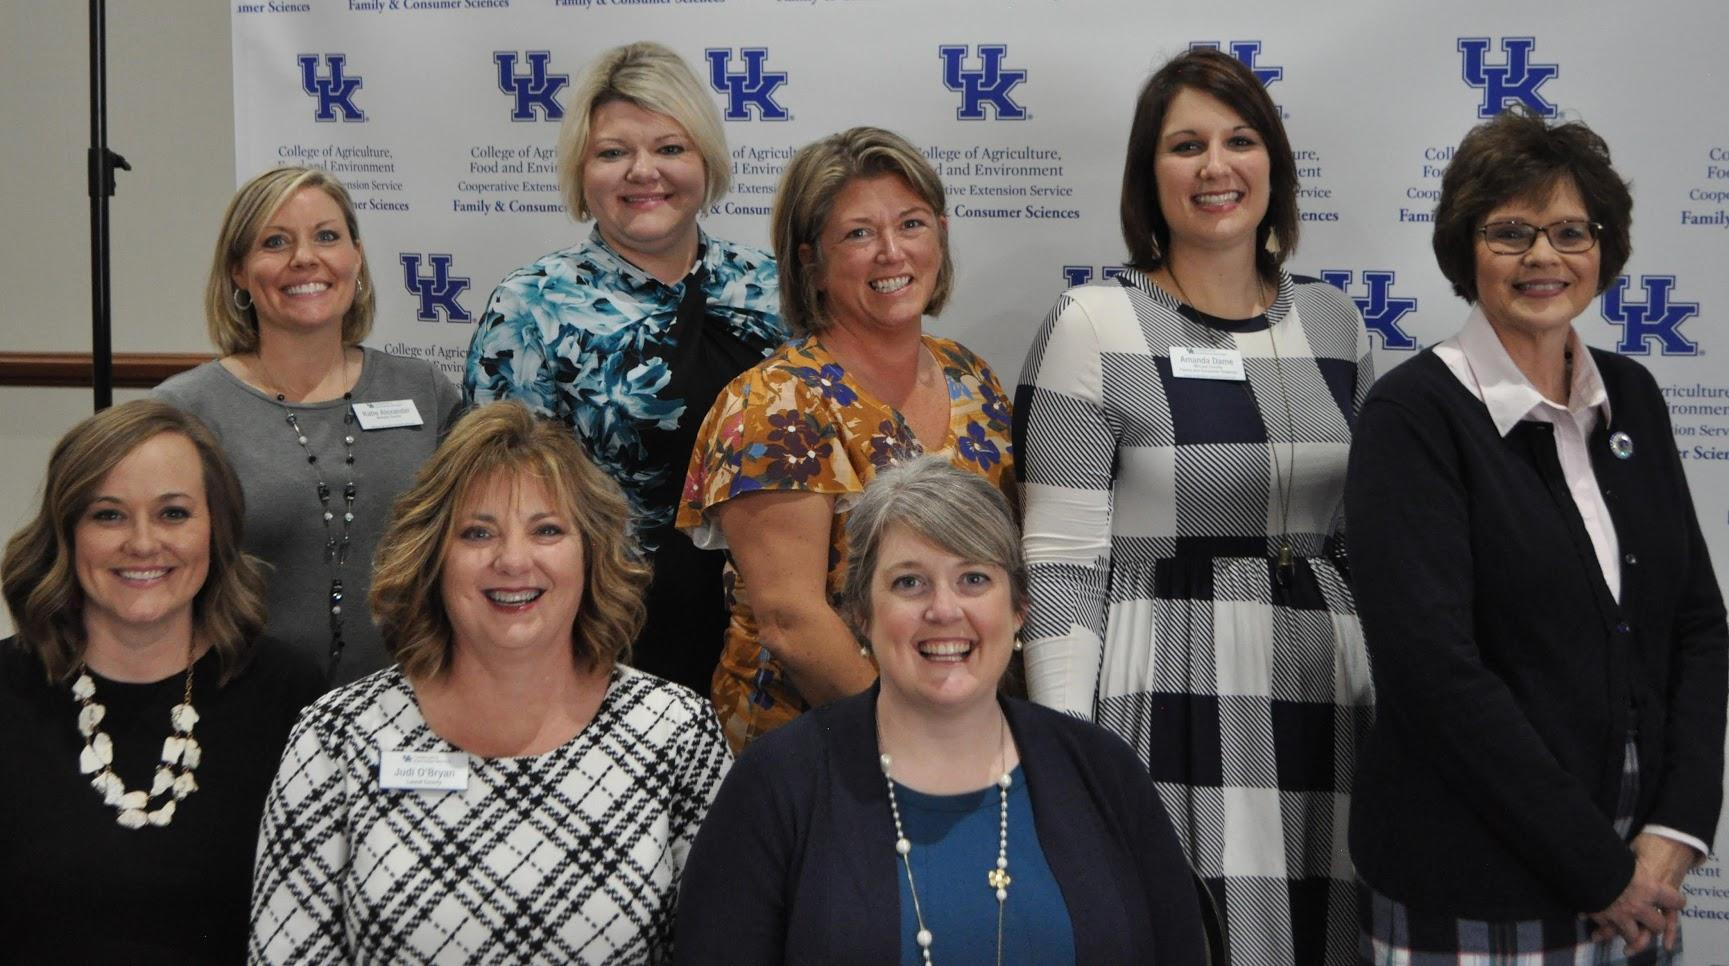 2019 KEAFCS officers